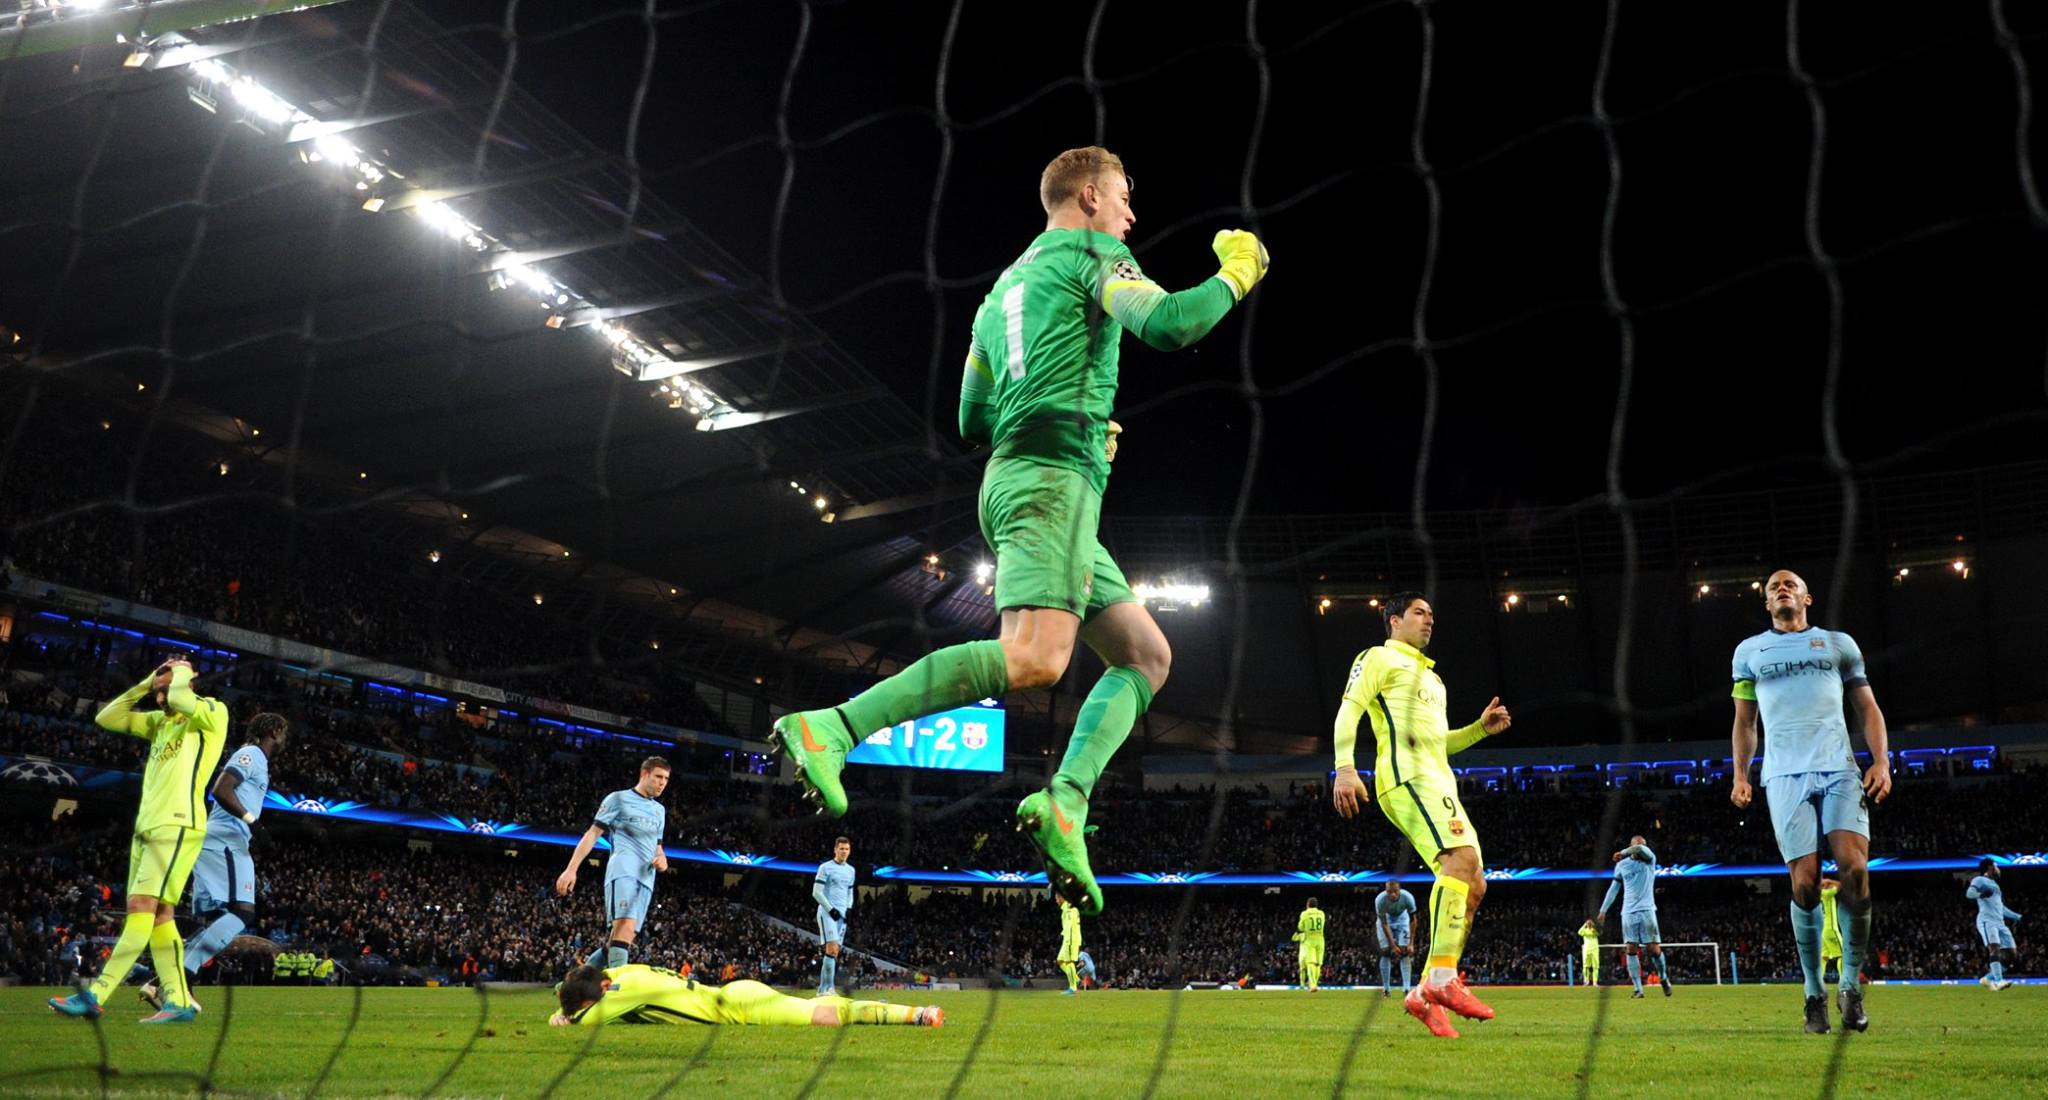 Jumping for joy - Joe saves Lionel Messi's penalty but it wasn't enough to help City overcome Barcelona in 2015.